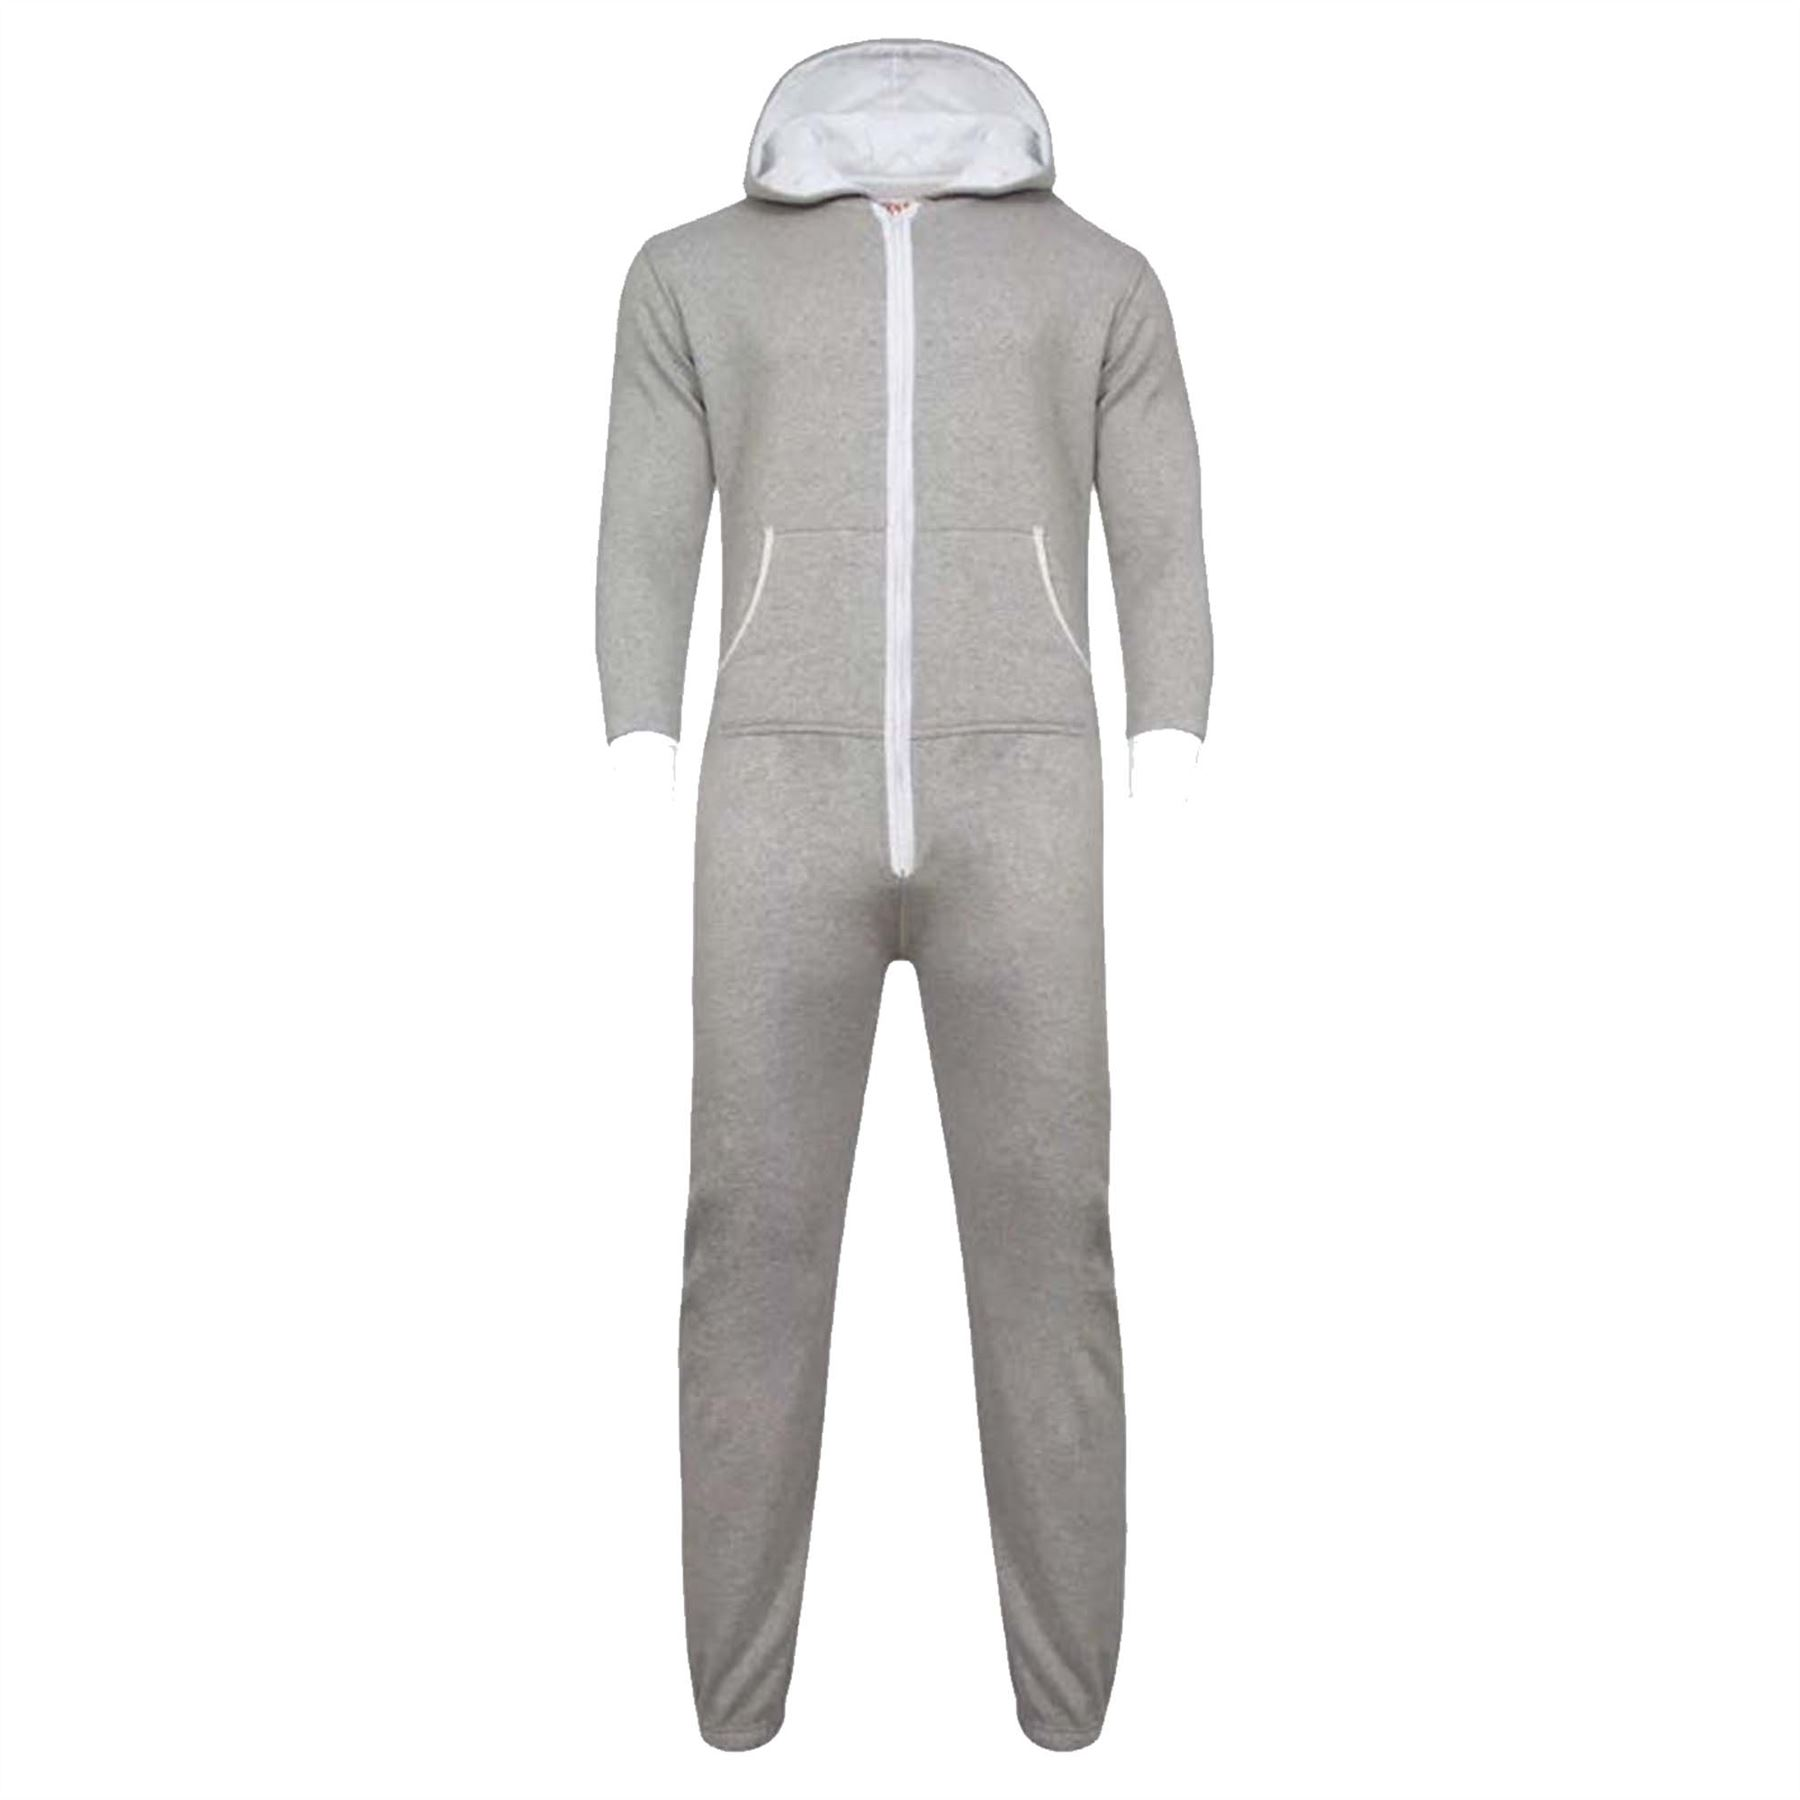 ac240b1b6a1f Details about Womens Ladies Adult Hooded Plain Onesie Not Gerber All In One  Playsuit Jumpsuit